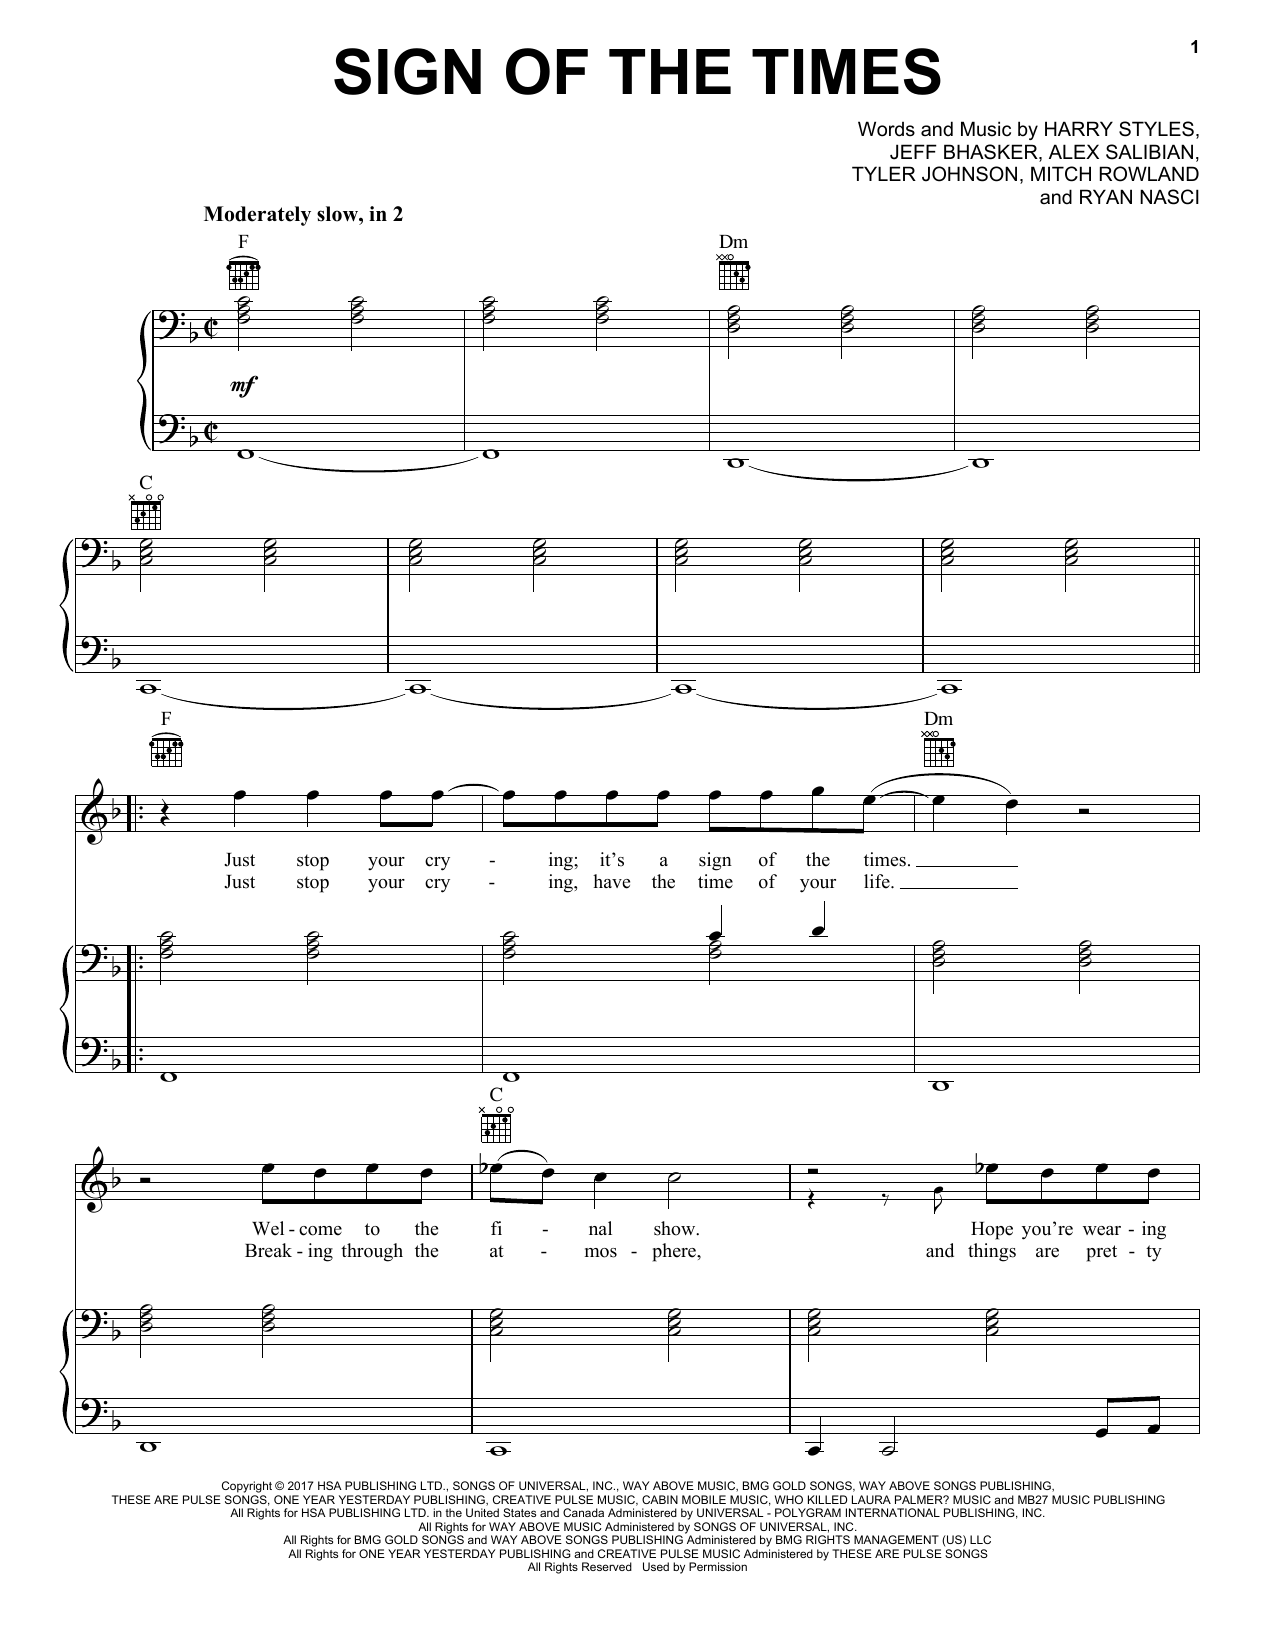 Harry Styles Sign Of The Times Sheet Music Notes Chords Score